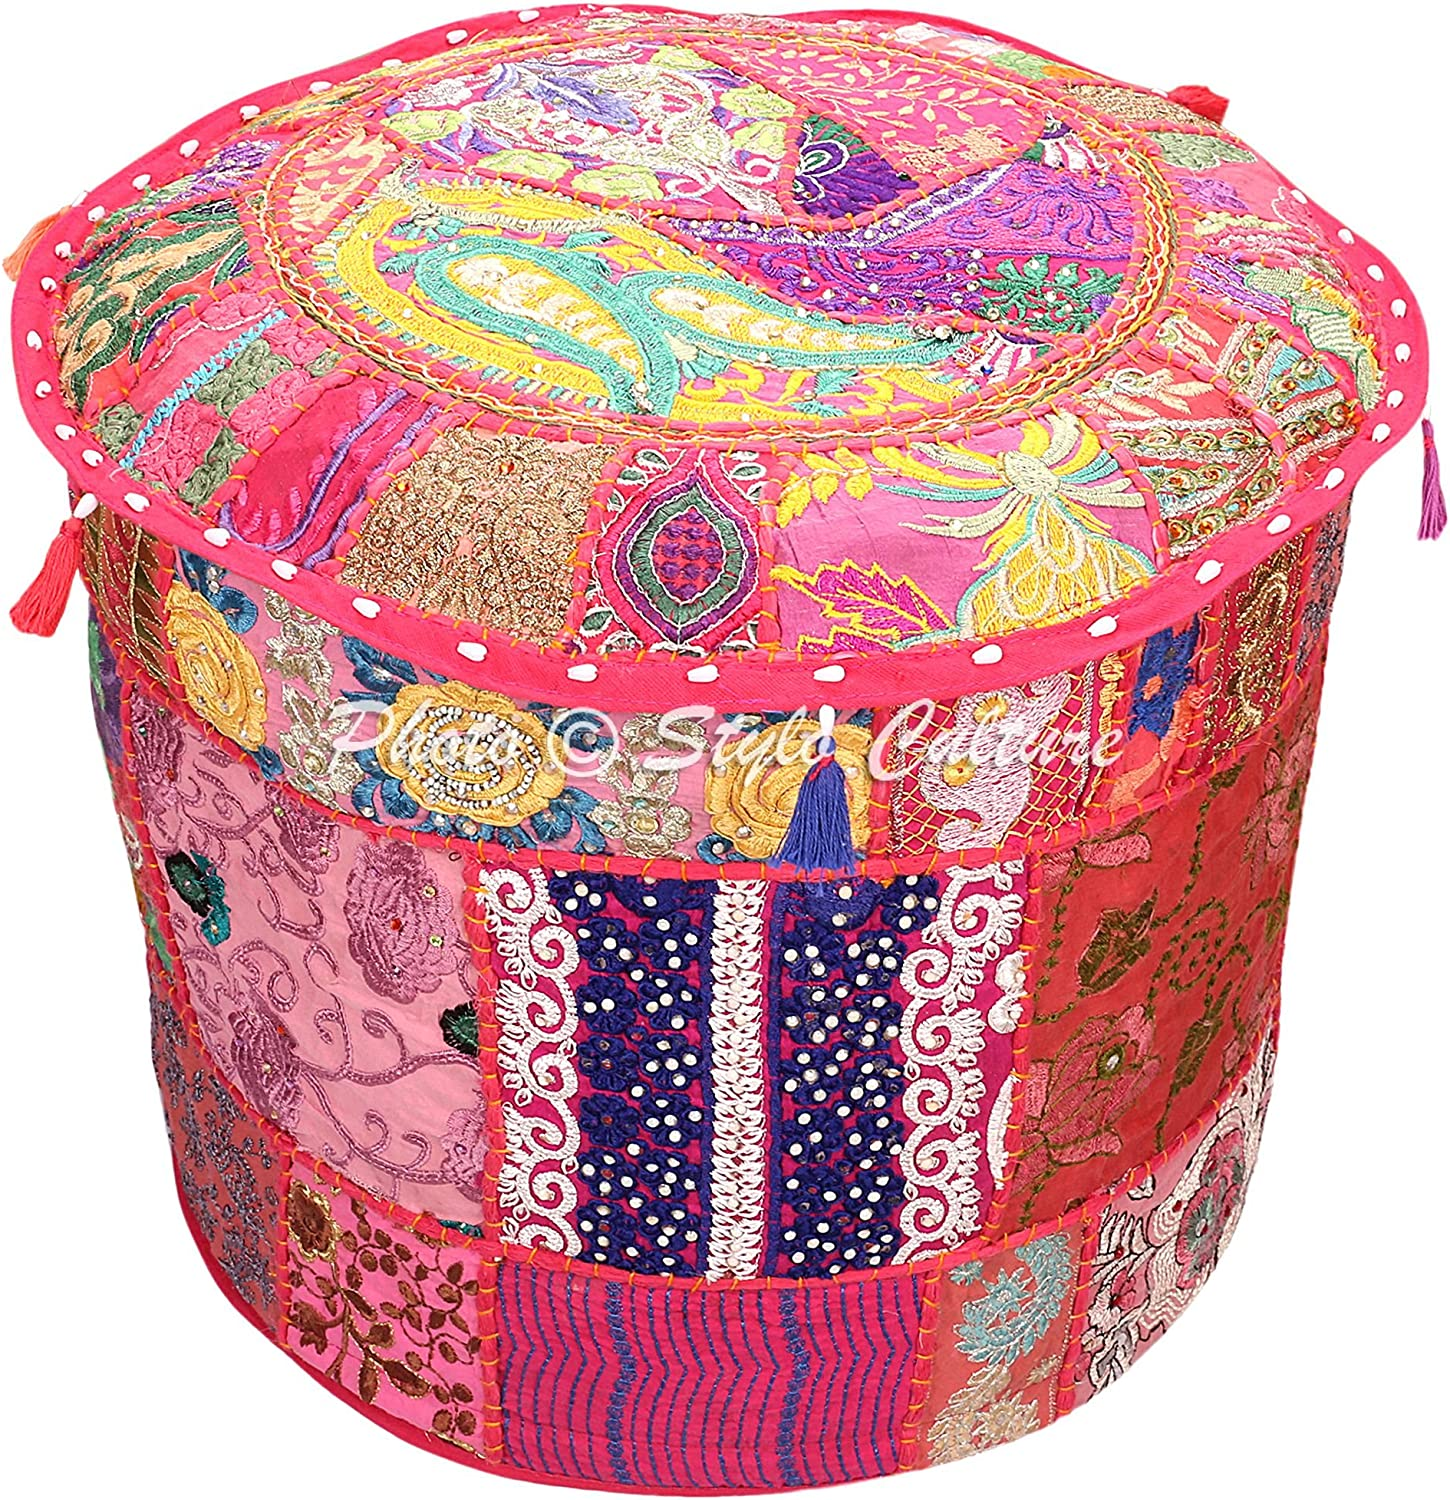 Stylo Culture Bohemian Round Sacramento Mail order cheap Mall Pouf Cover Indian Patchwork Ottoman